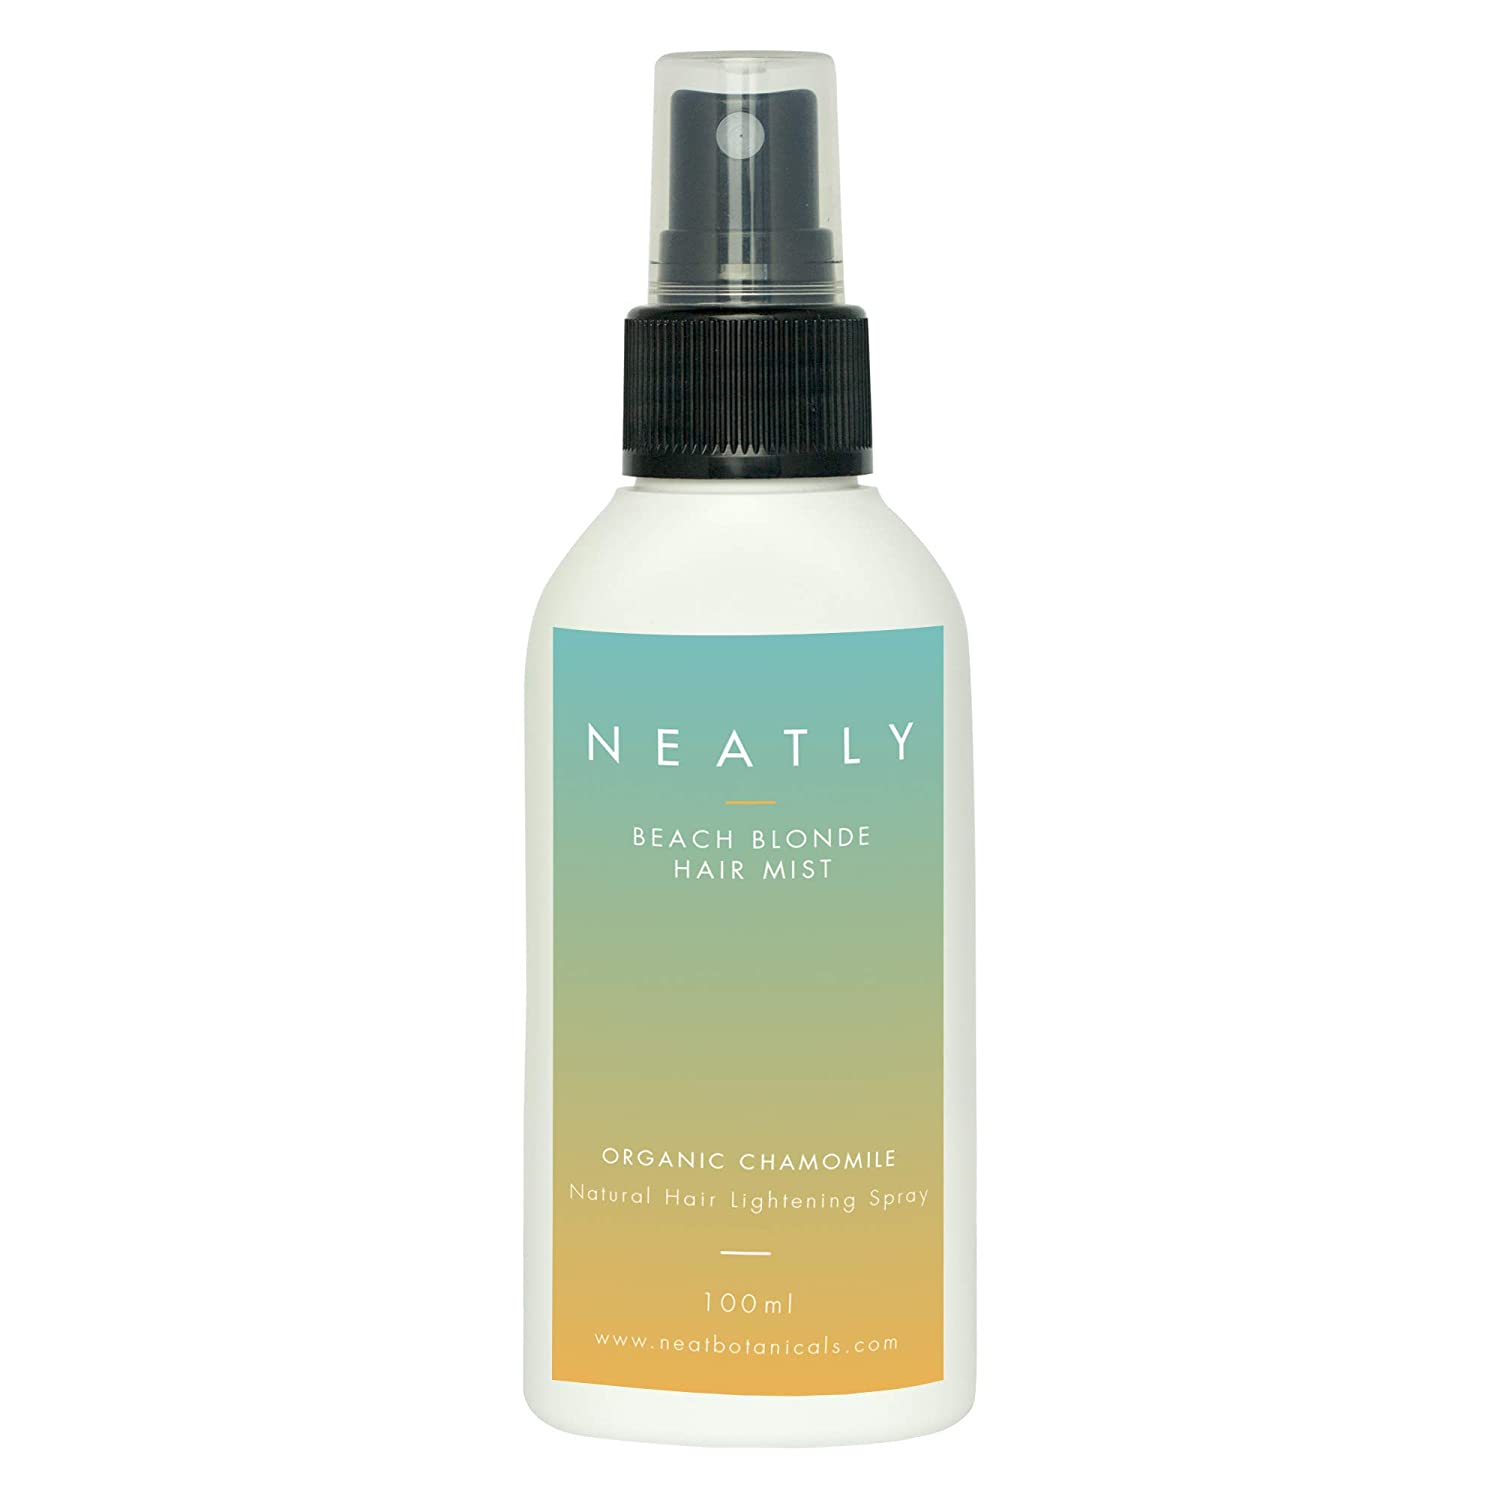 Beach Blonde Hair Mist by NEATLY   100 ml   Contains Chamomile Extract & Magnesium oil   Natural & Organic Hair Lightening Spray for a Blonde Beach look   For wet as well as dry hair